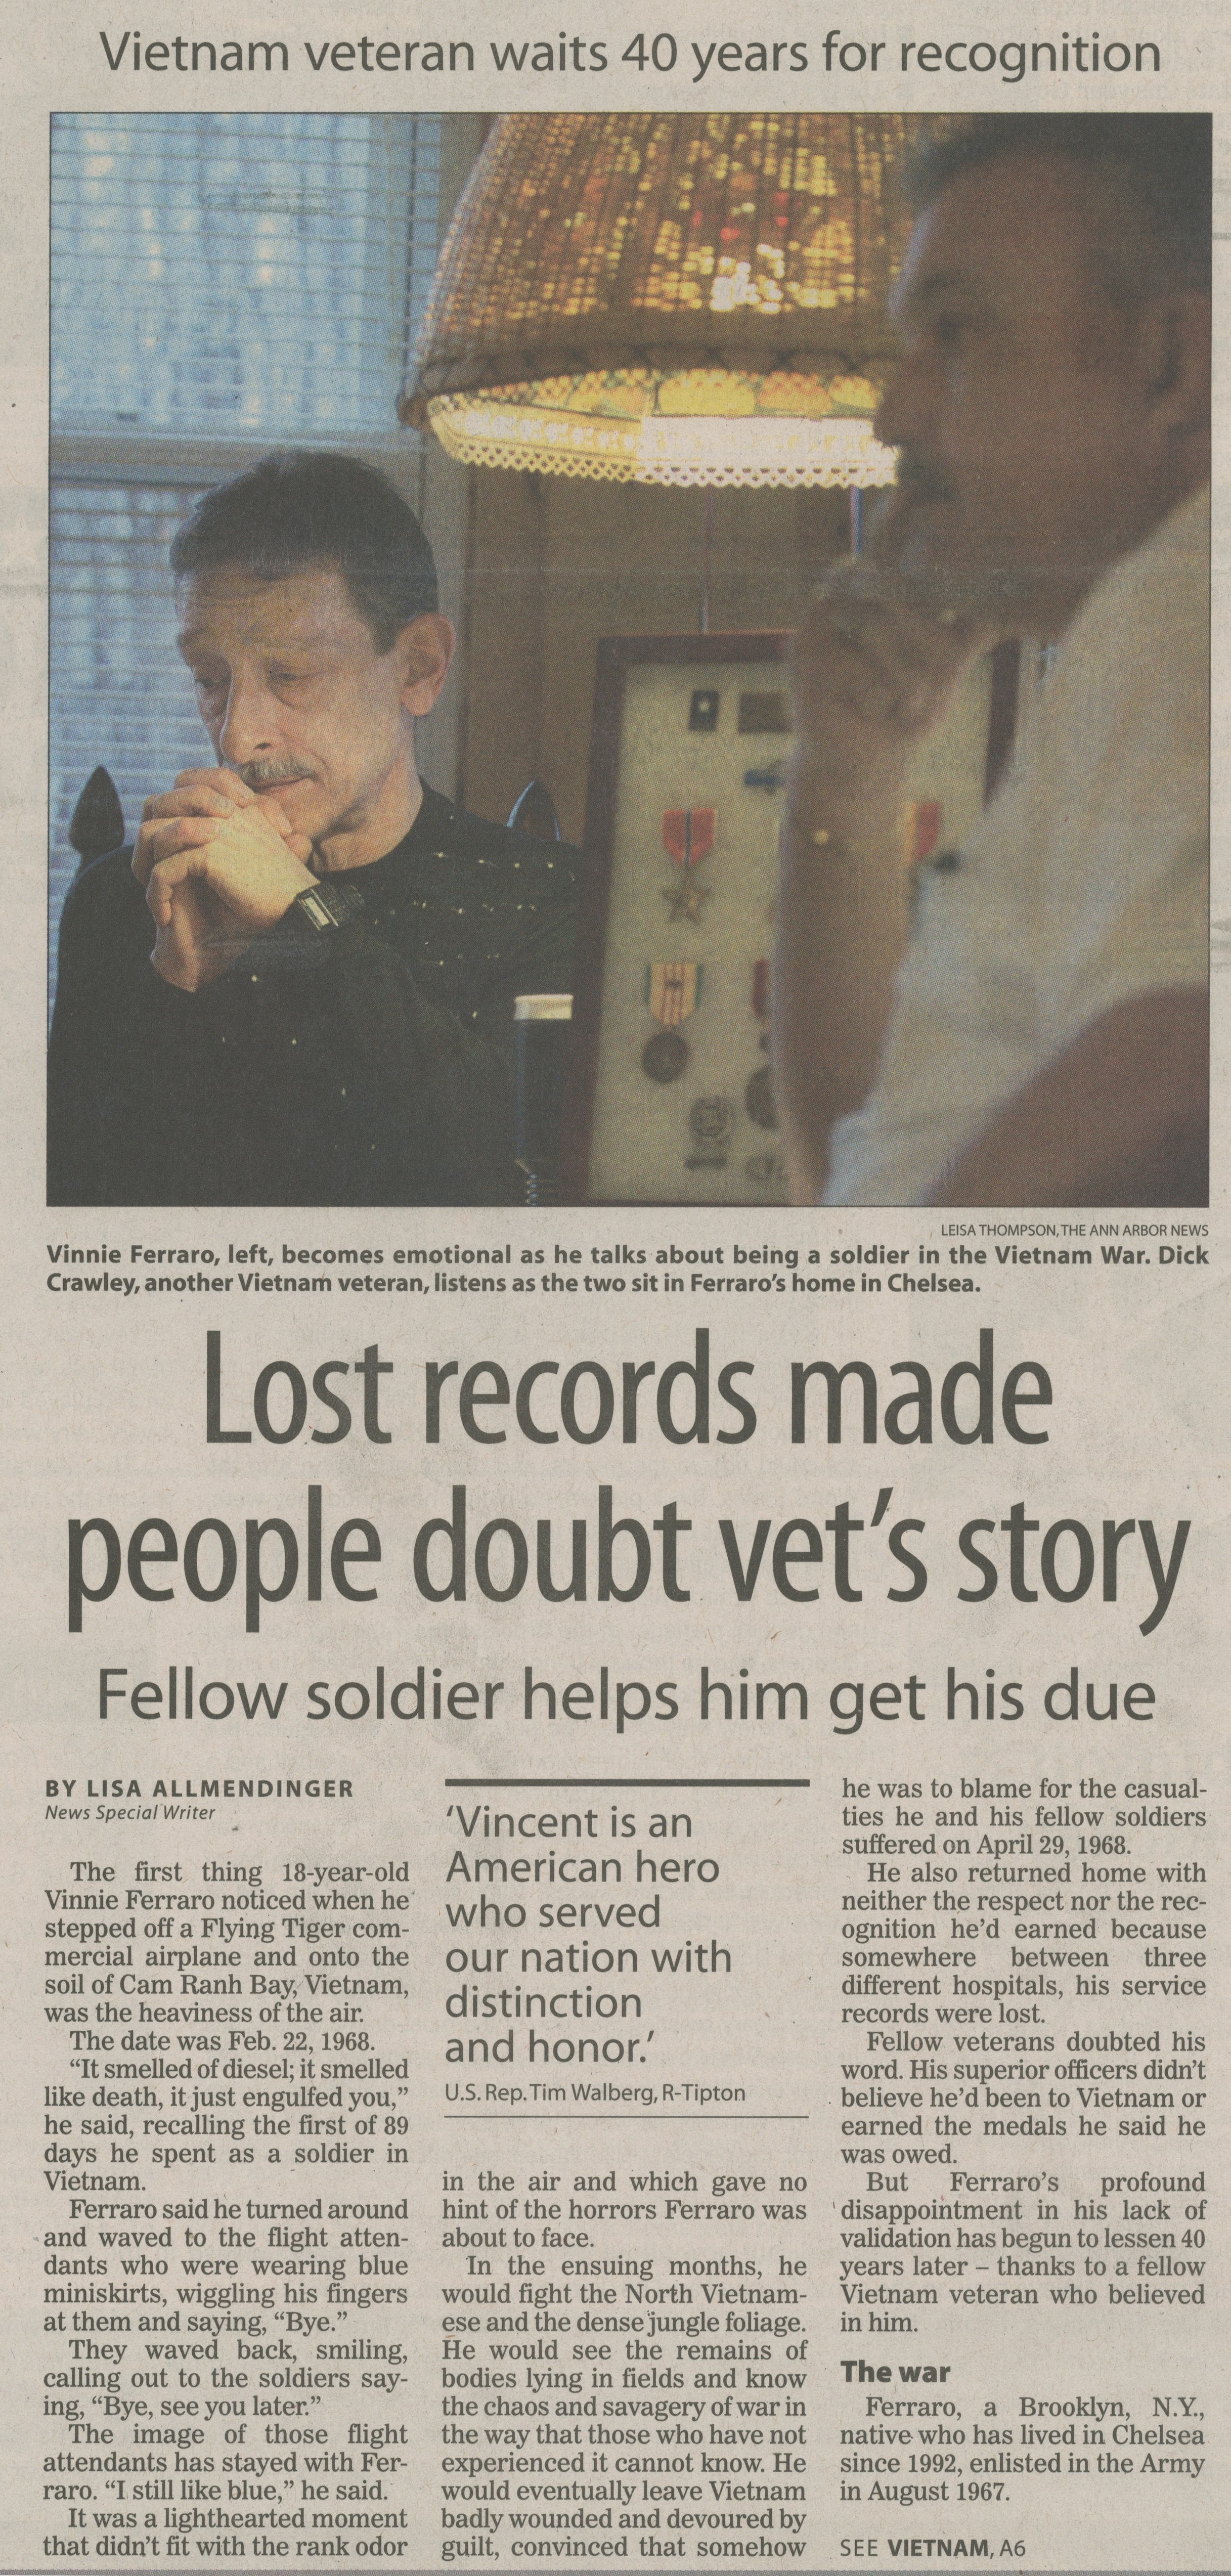 Lost Records Made People Doubt Vet's Story image